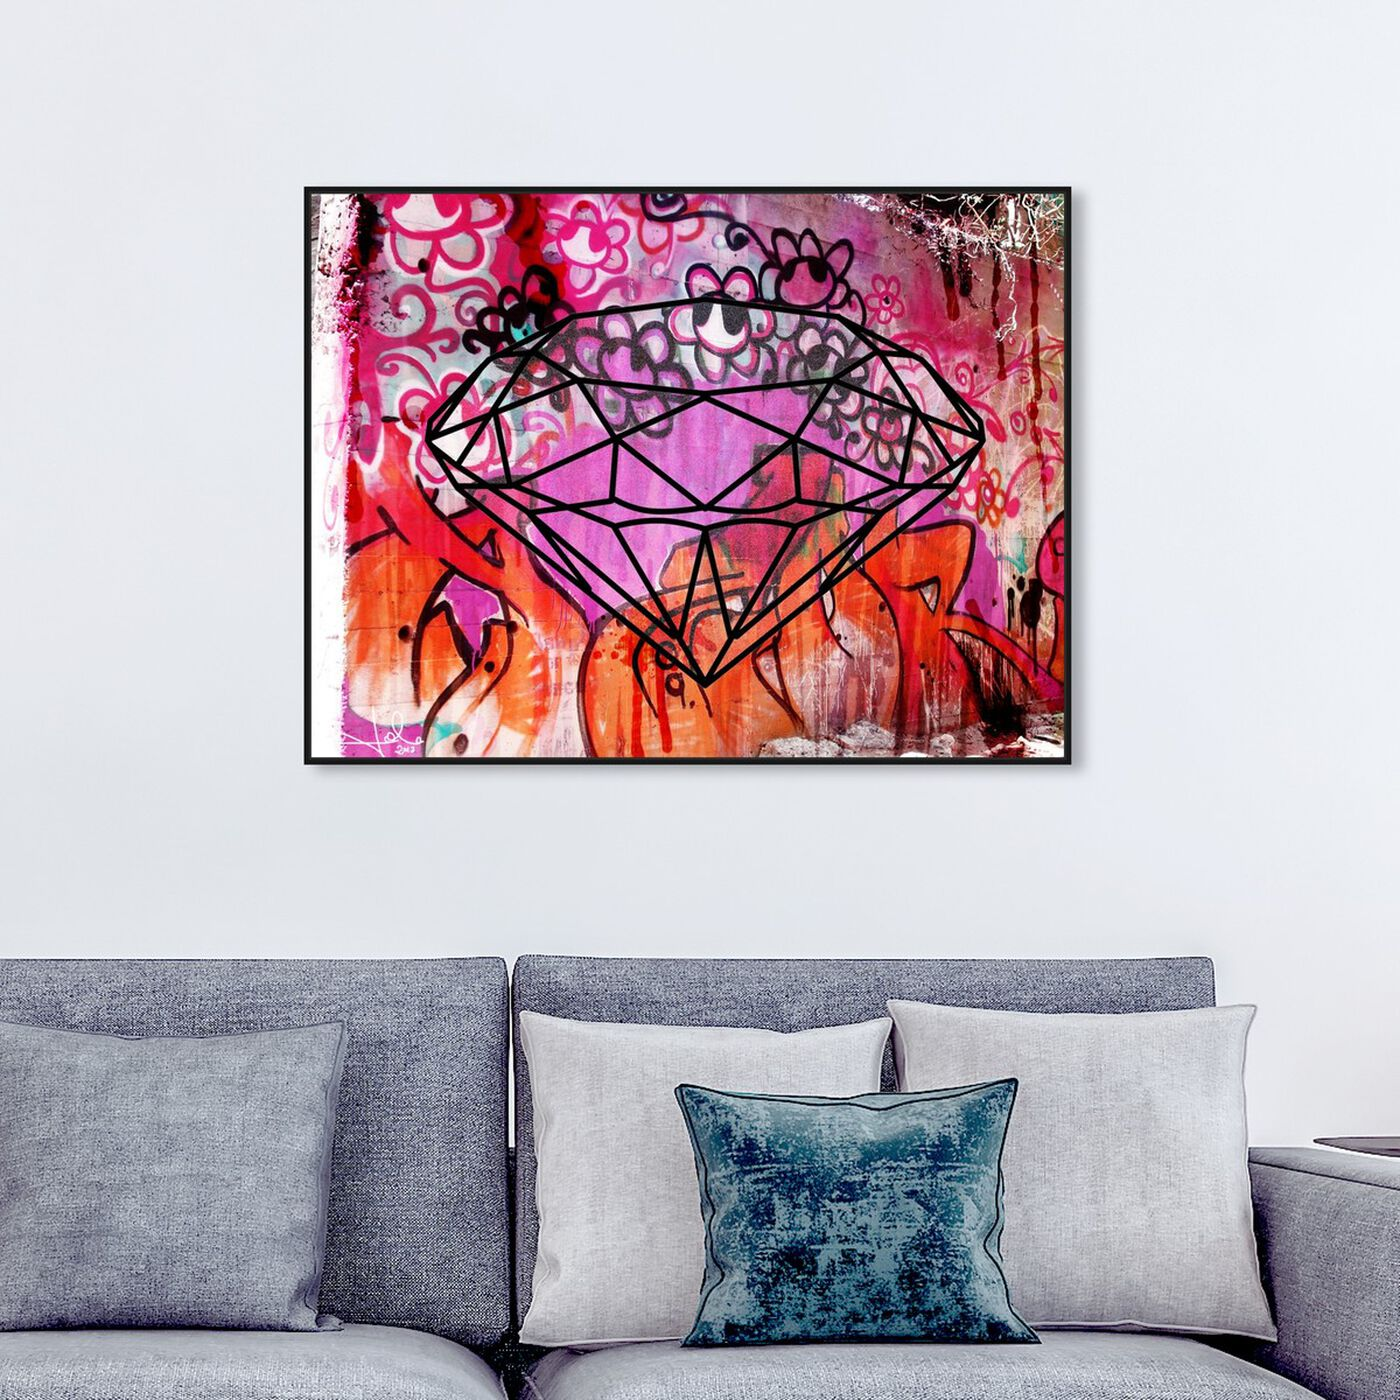 Hanging view of Rock Solid featuring abstract and geometric art.